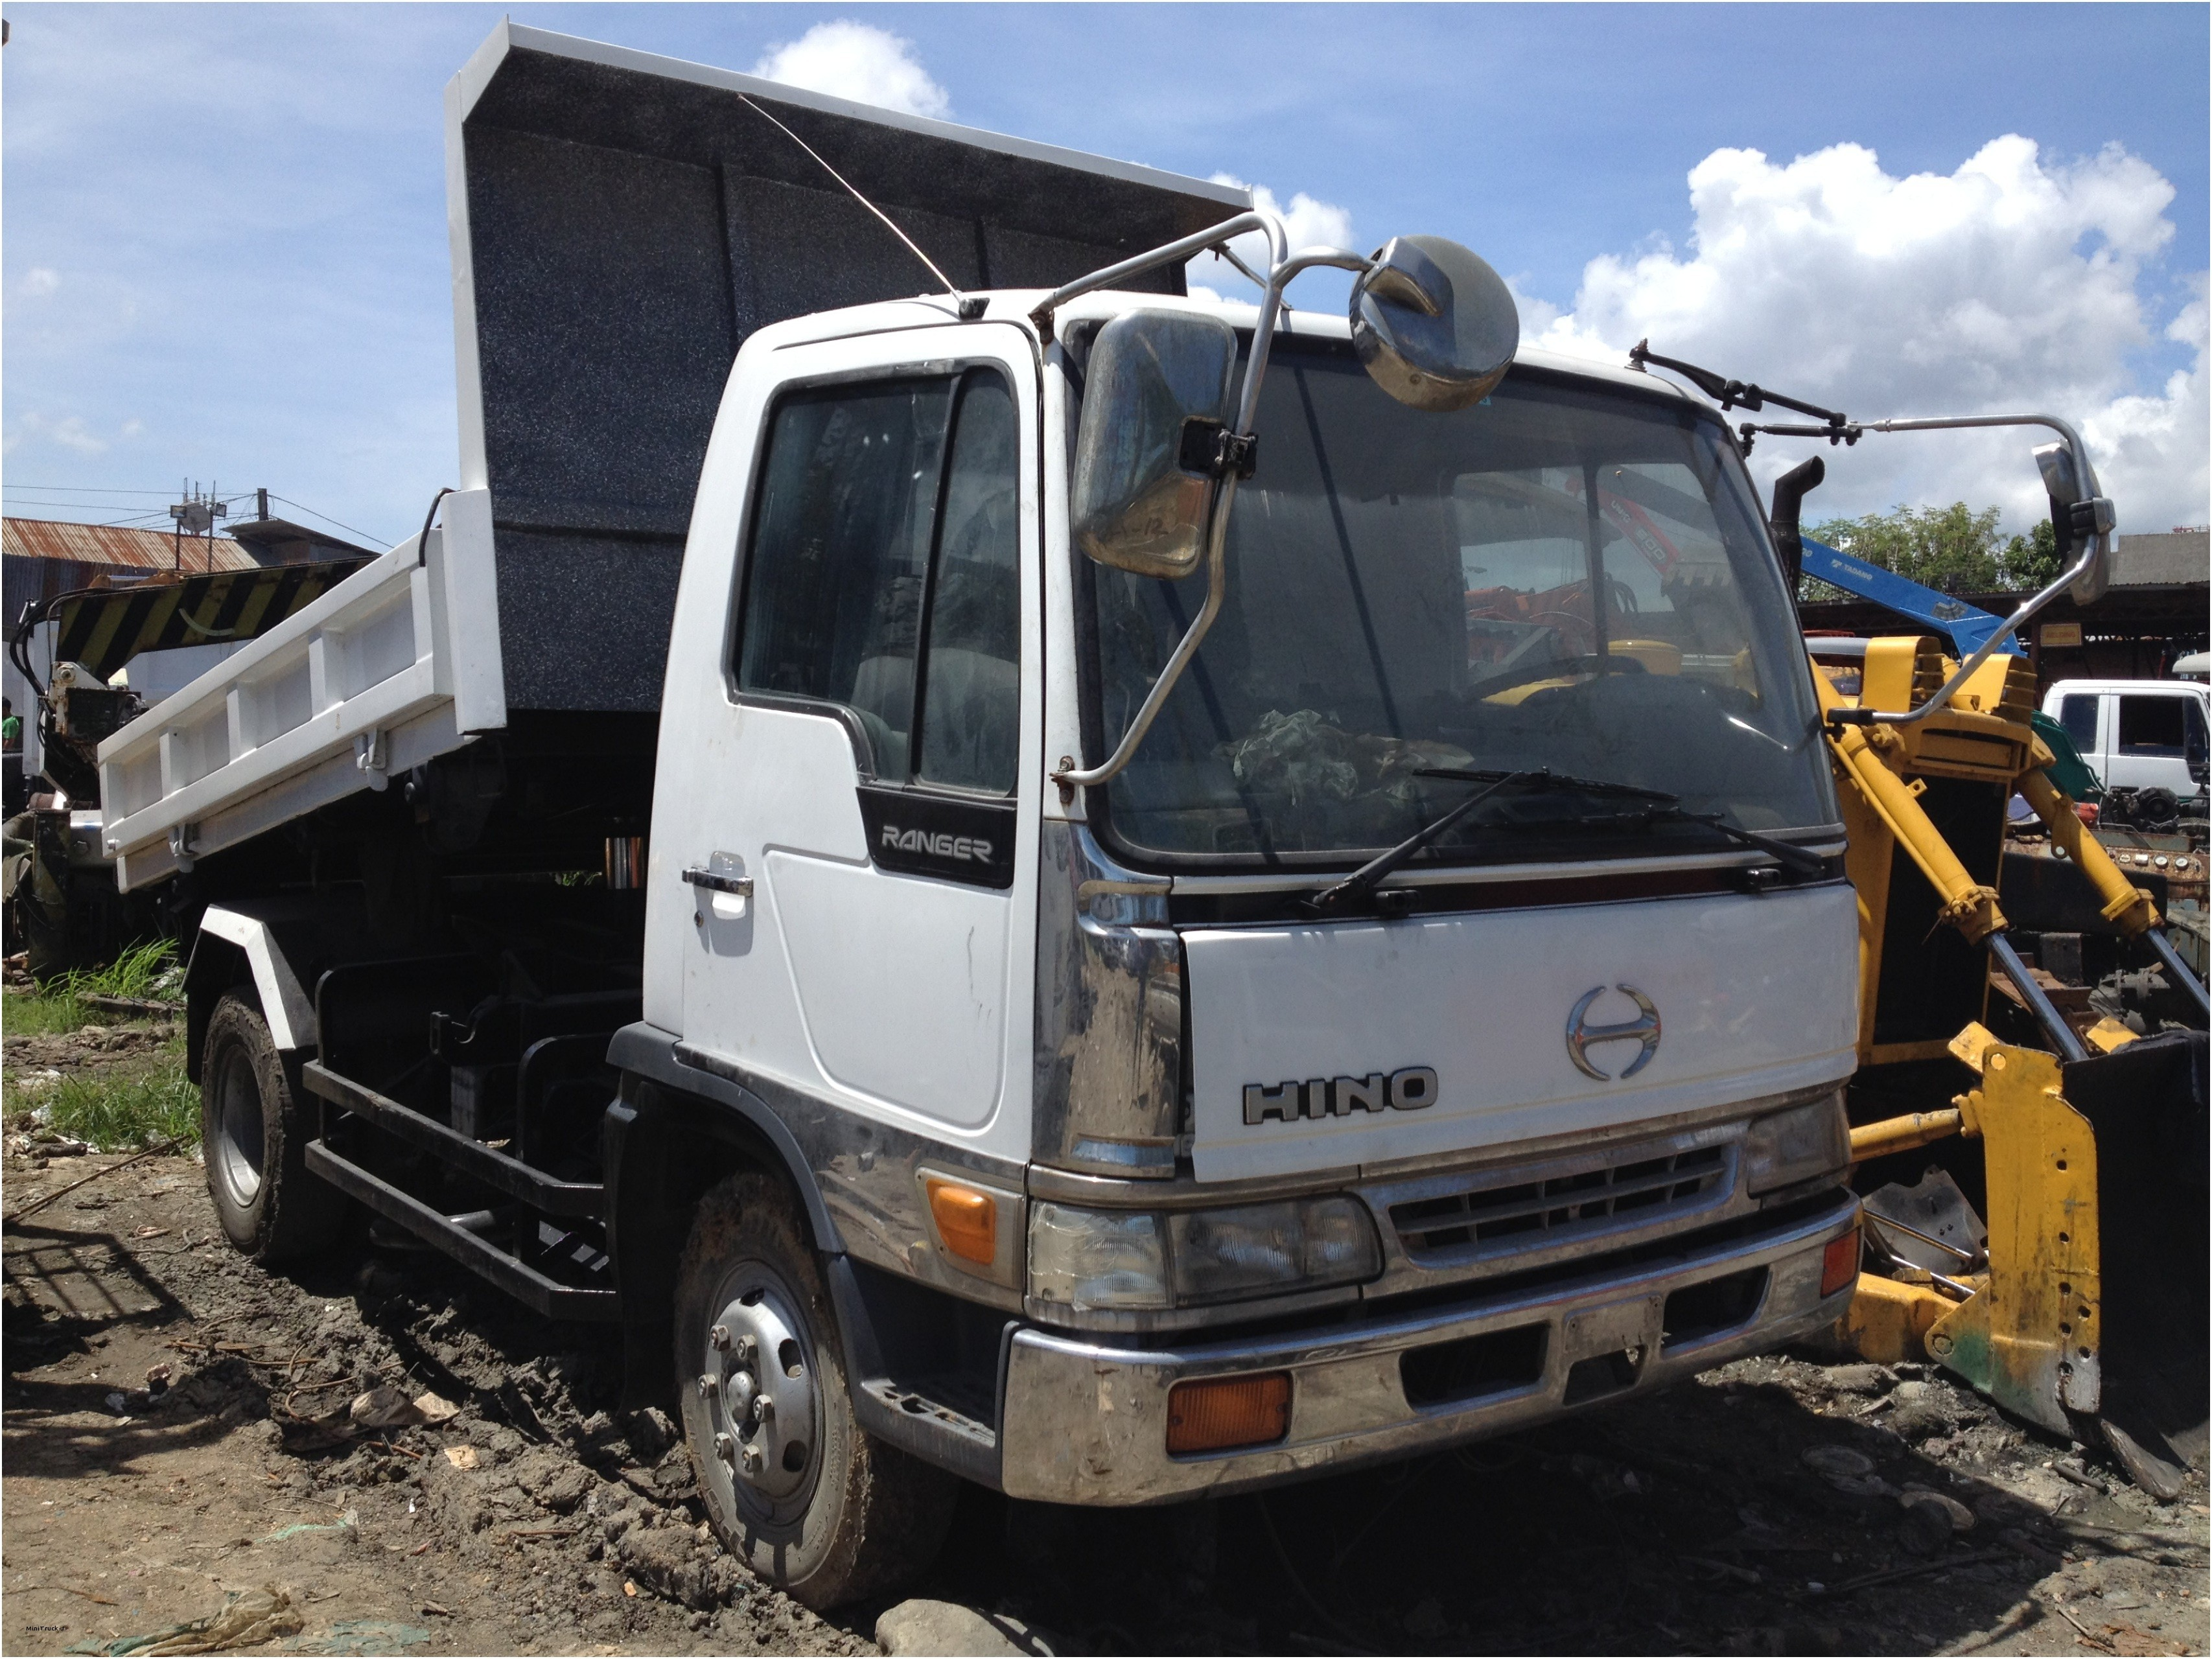 Diagram Of A Dump Truck Best Used Small Trucks – Mini Truck Japan Of Diagram Of A Dump Truck